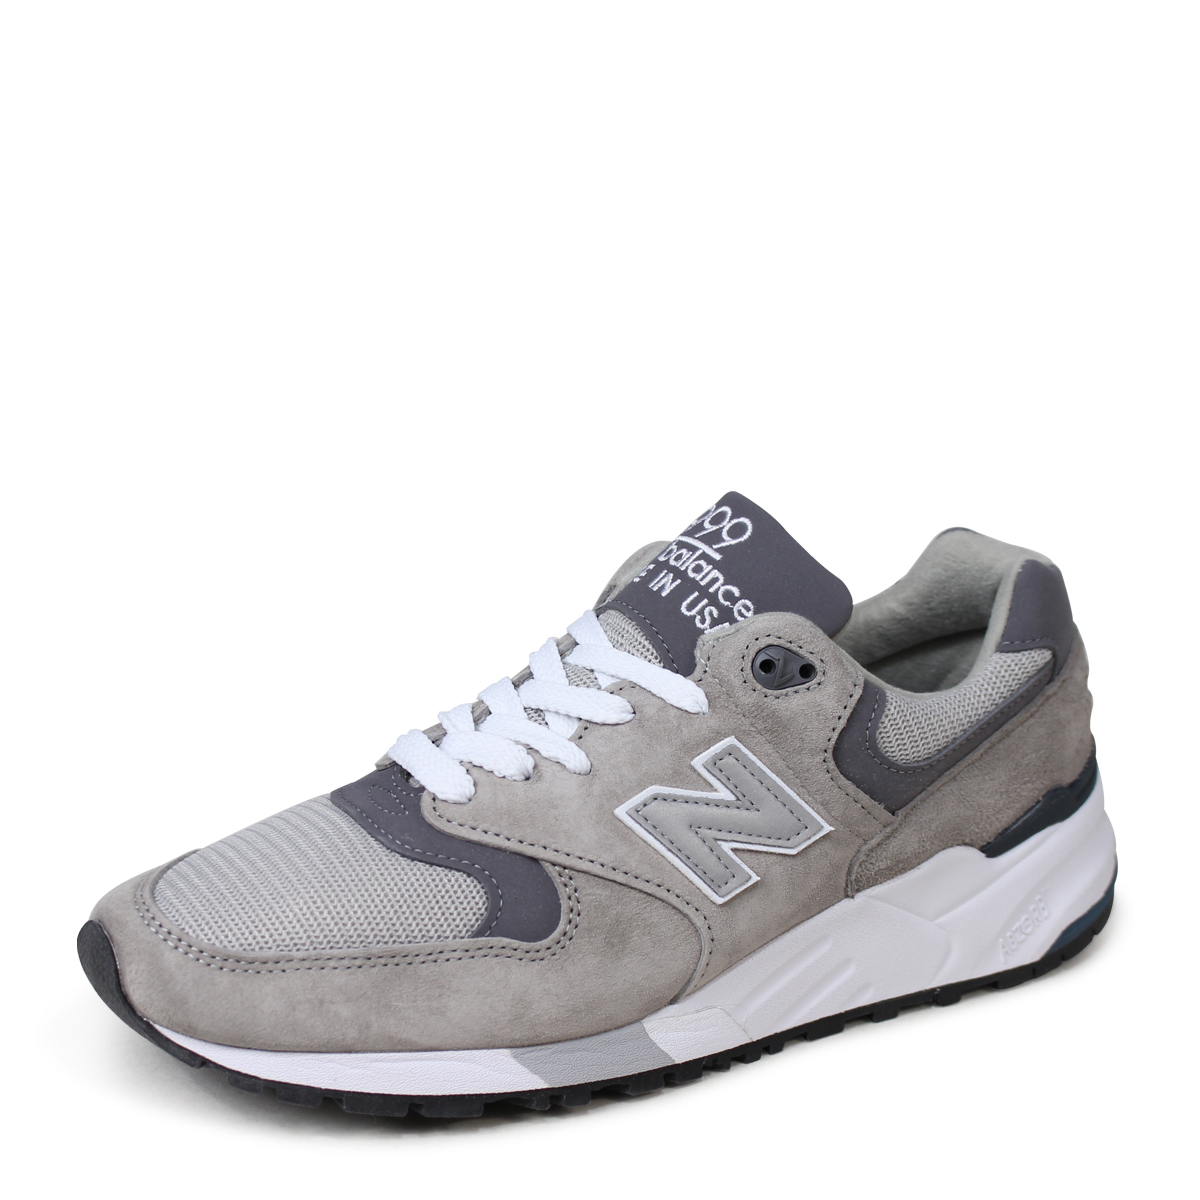 grossiste f03f3 82ce6 new balance M999CGL 999 men's New Balance sneakers D Wise MADE IN USA shoes  gray [the 8/13 additional arrival] [188]